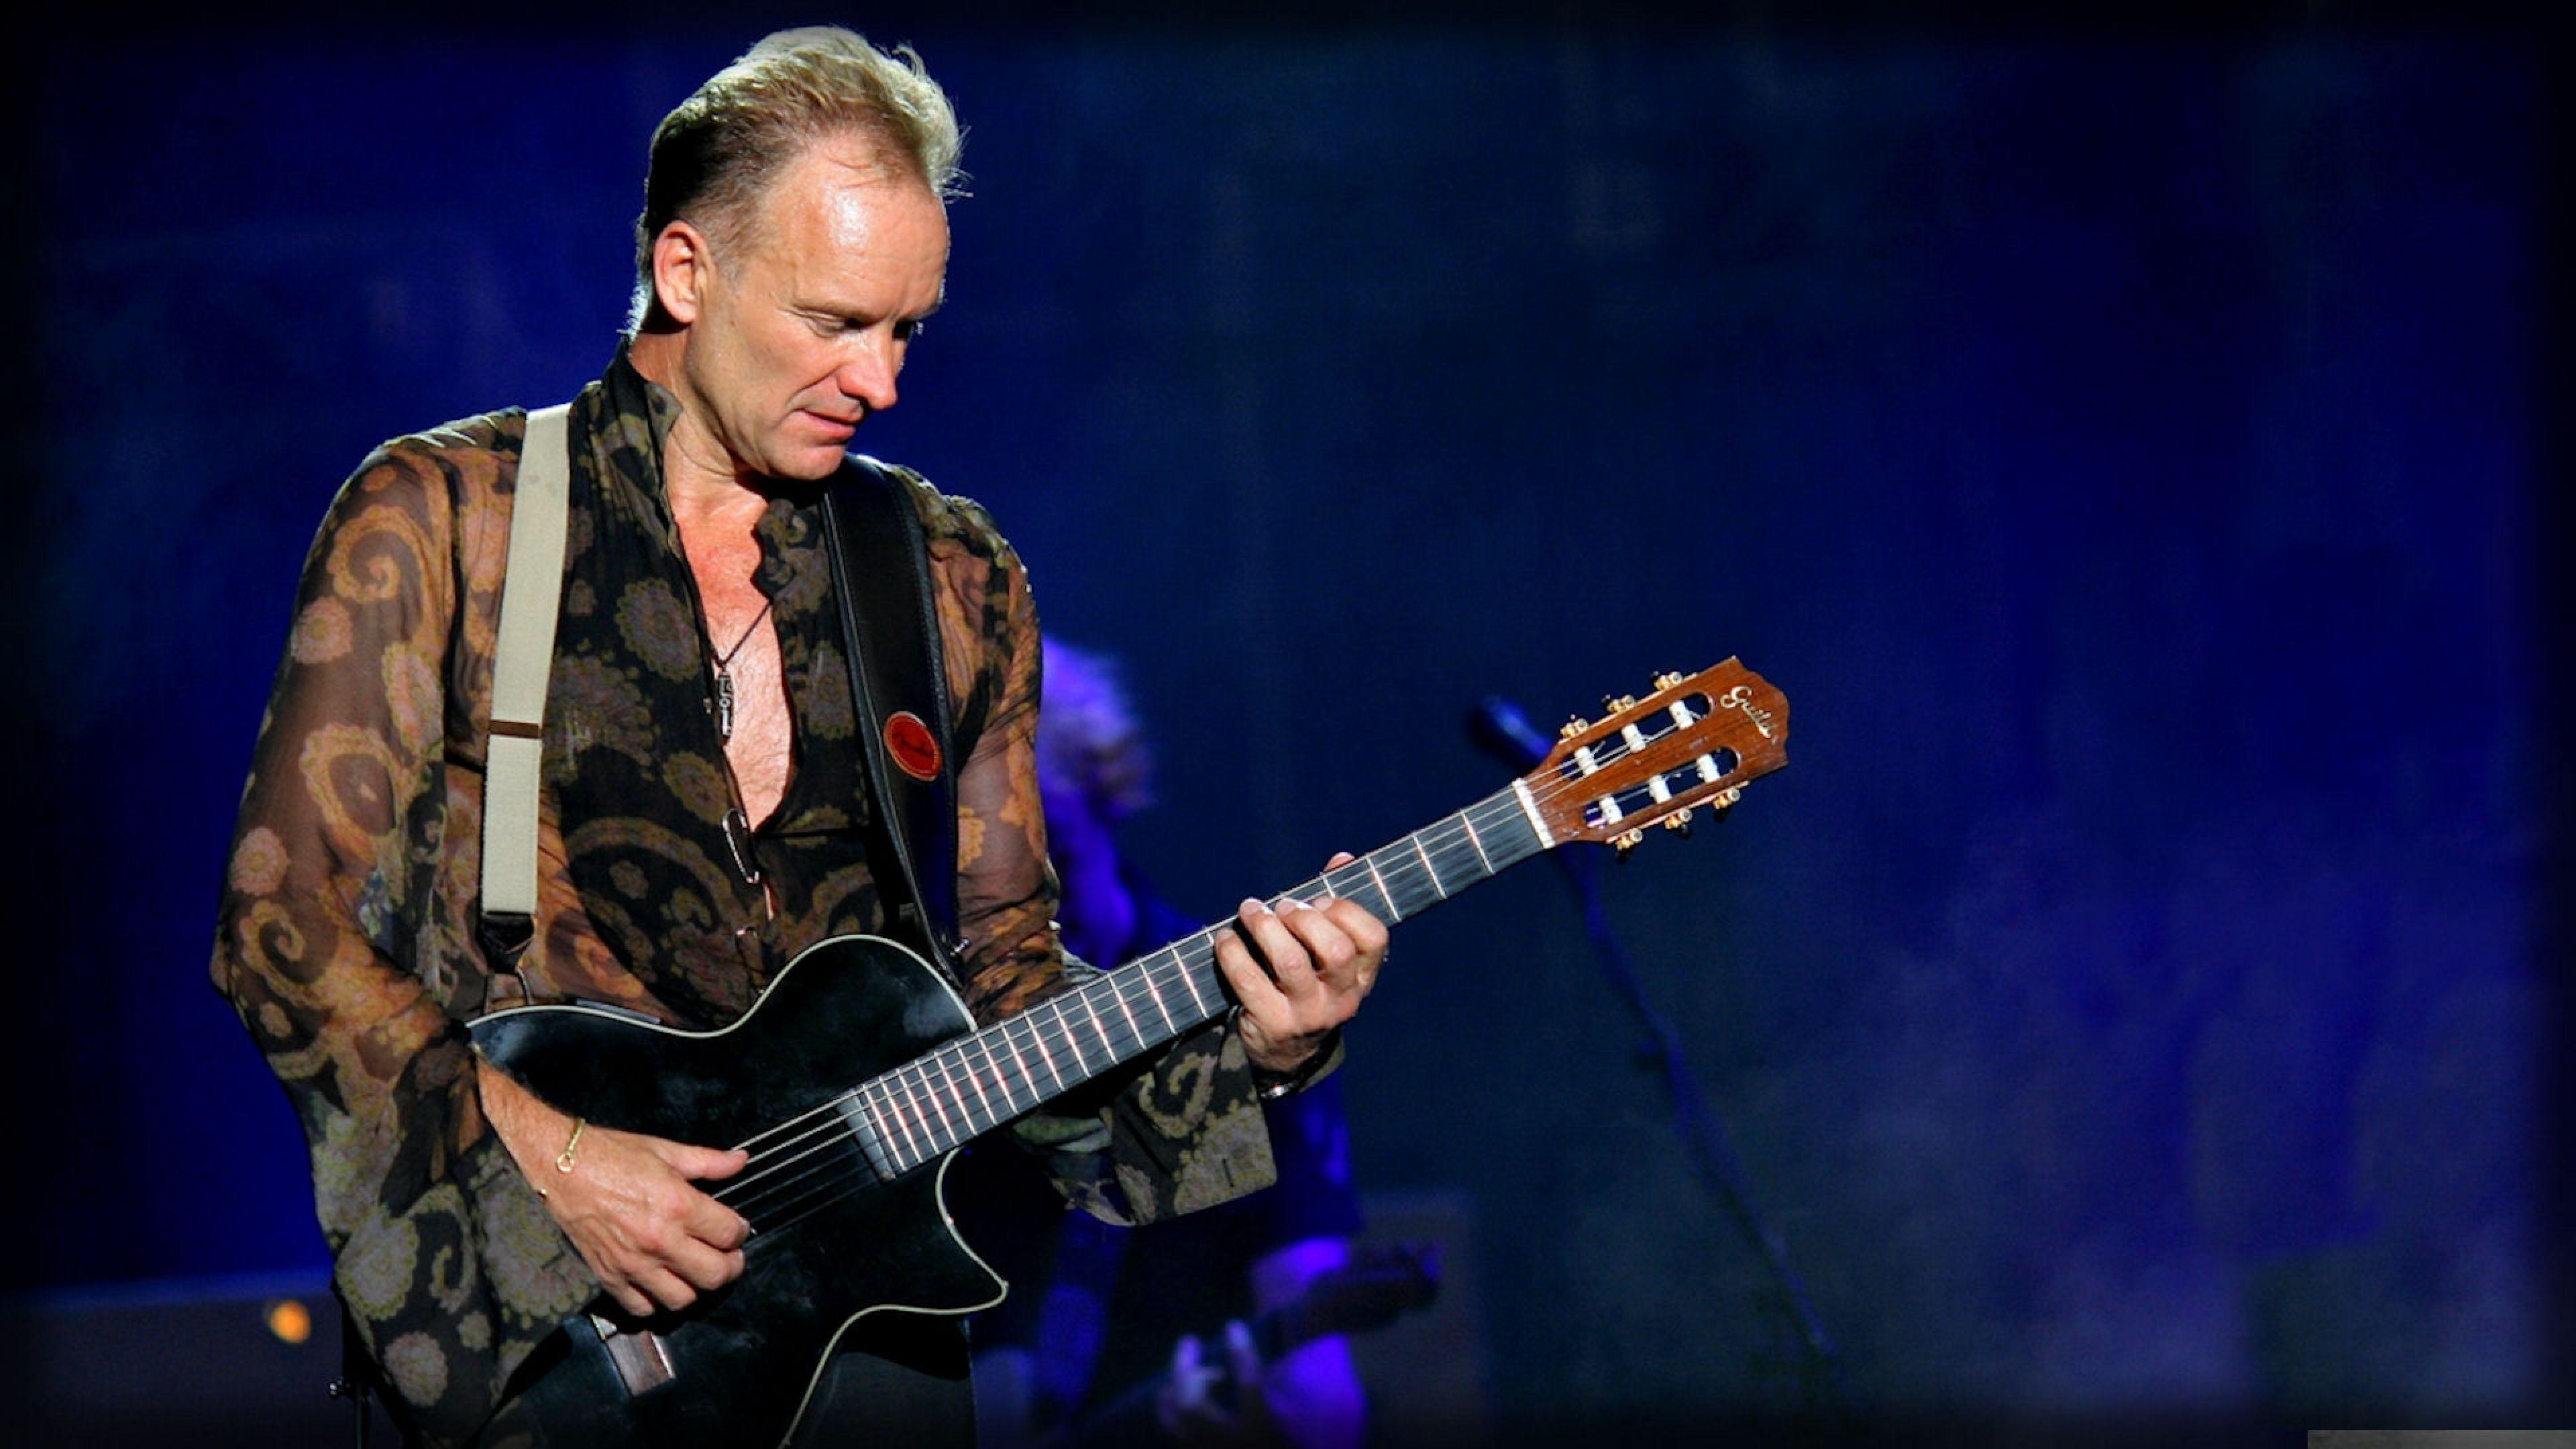 Download Wallpaper 3840x2160 Sting, Guitar, Play, Shirt, Show 4K ...